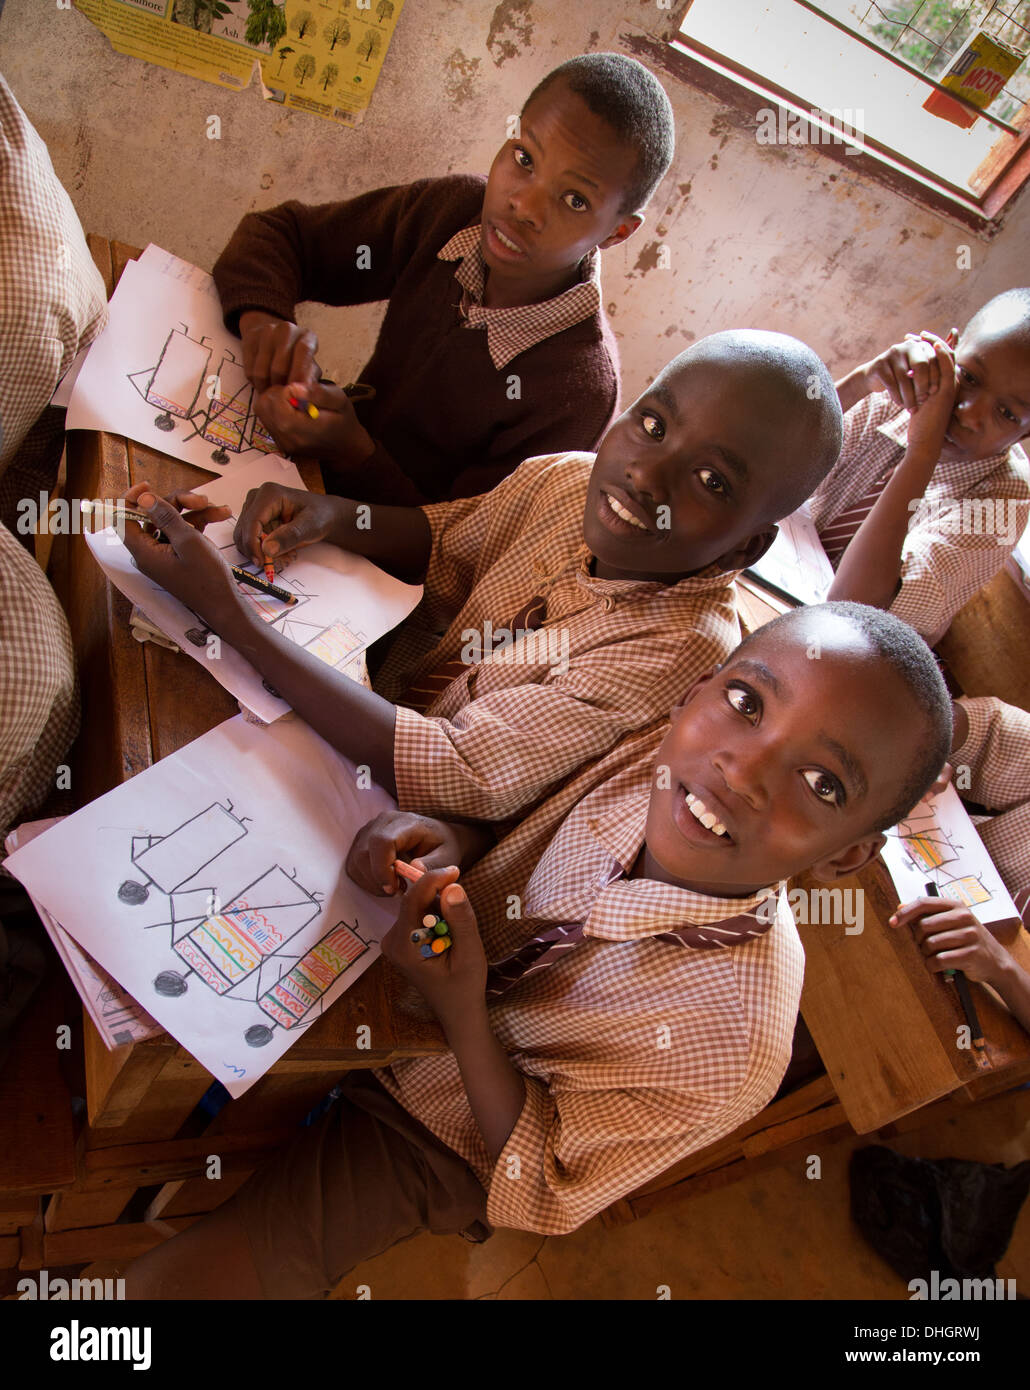 Schoolboys in a Kenyan classroom show off their art works - Stock Image